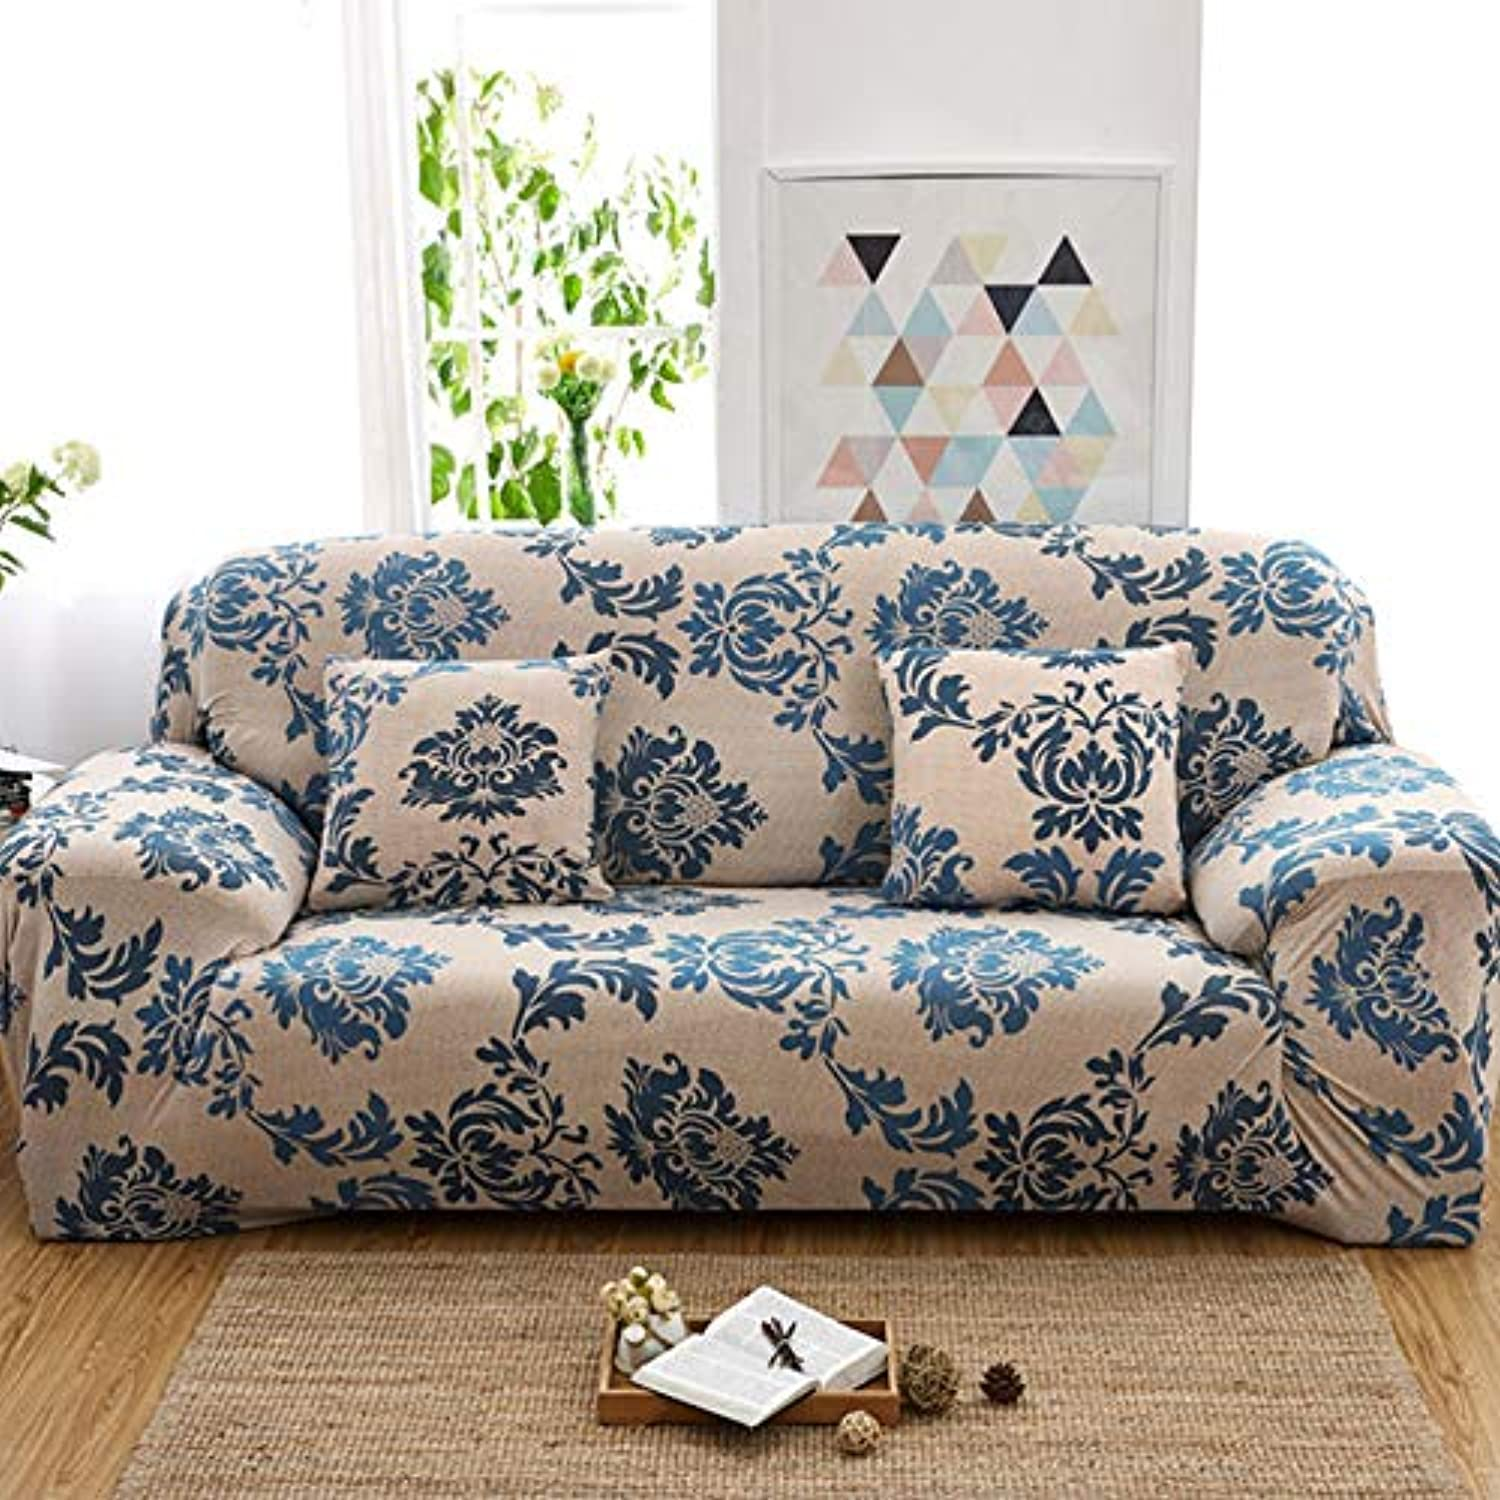 Universal Stretch Sofa Cover Living Room Armchair Corner Sofa Elastic Slipcovers L Shaped Sofa Cover European Floral Pattern   6, 1 Seater